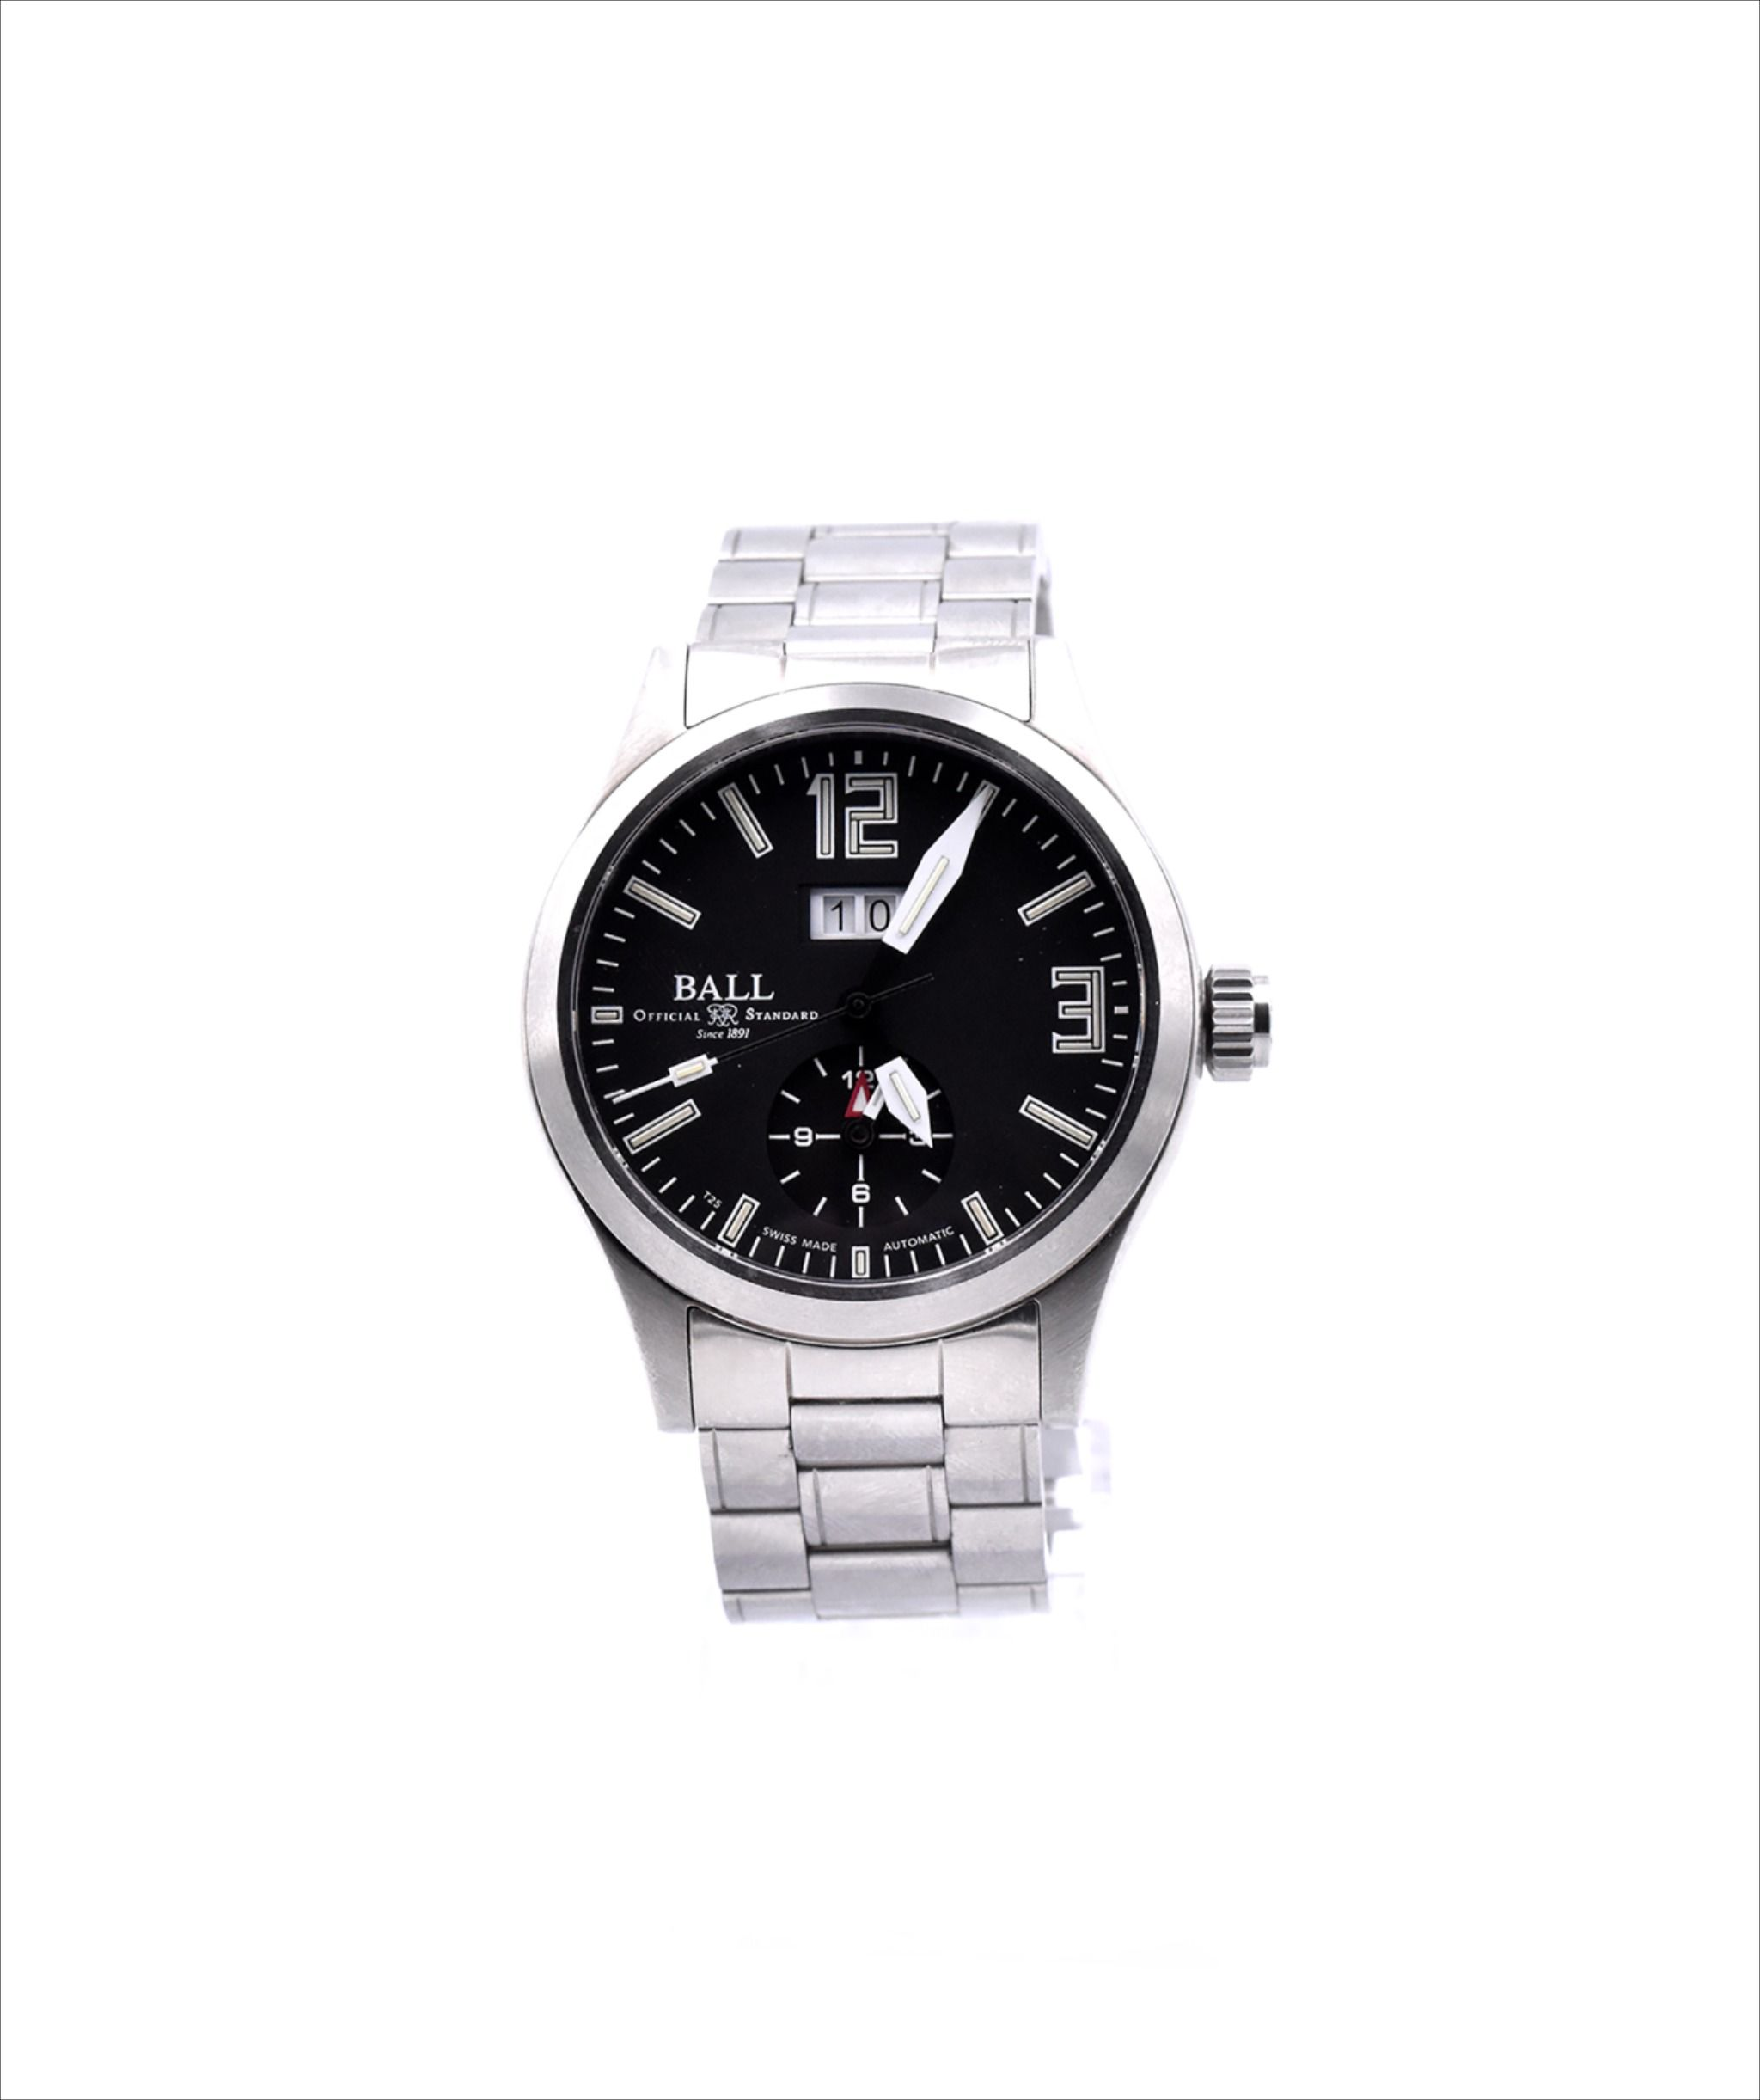 Ball Stainless Steel Engineer Master Ii Voyager Automatic 546 17 Watches From The Estate Watch Jewelry Company Scottsdale Az Stainless Steel Case Stainless Steel Automatic